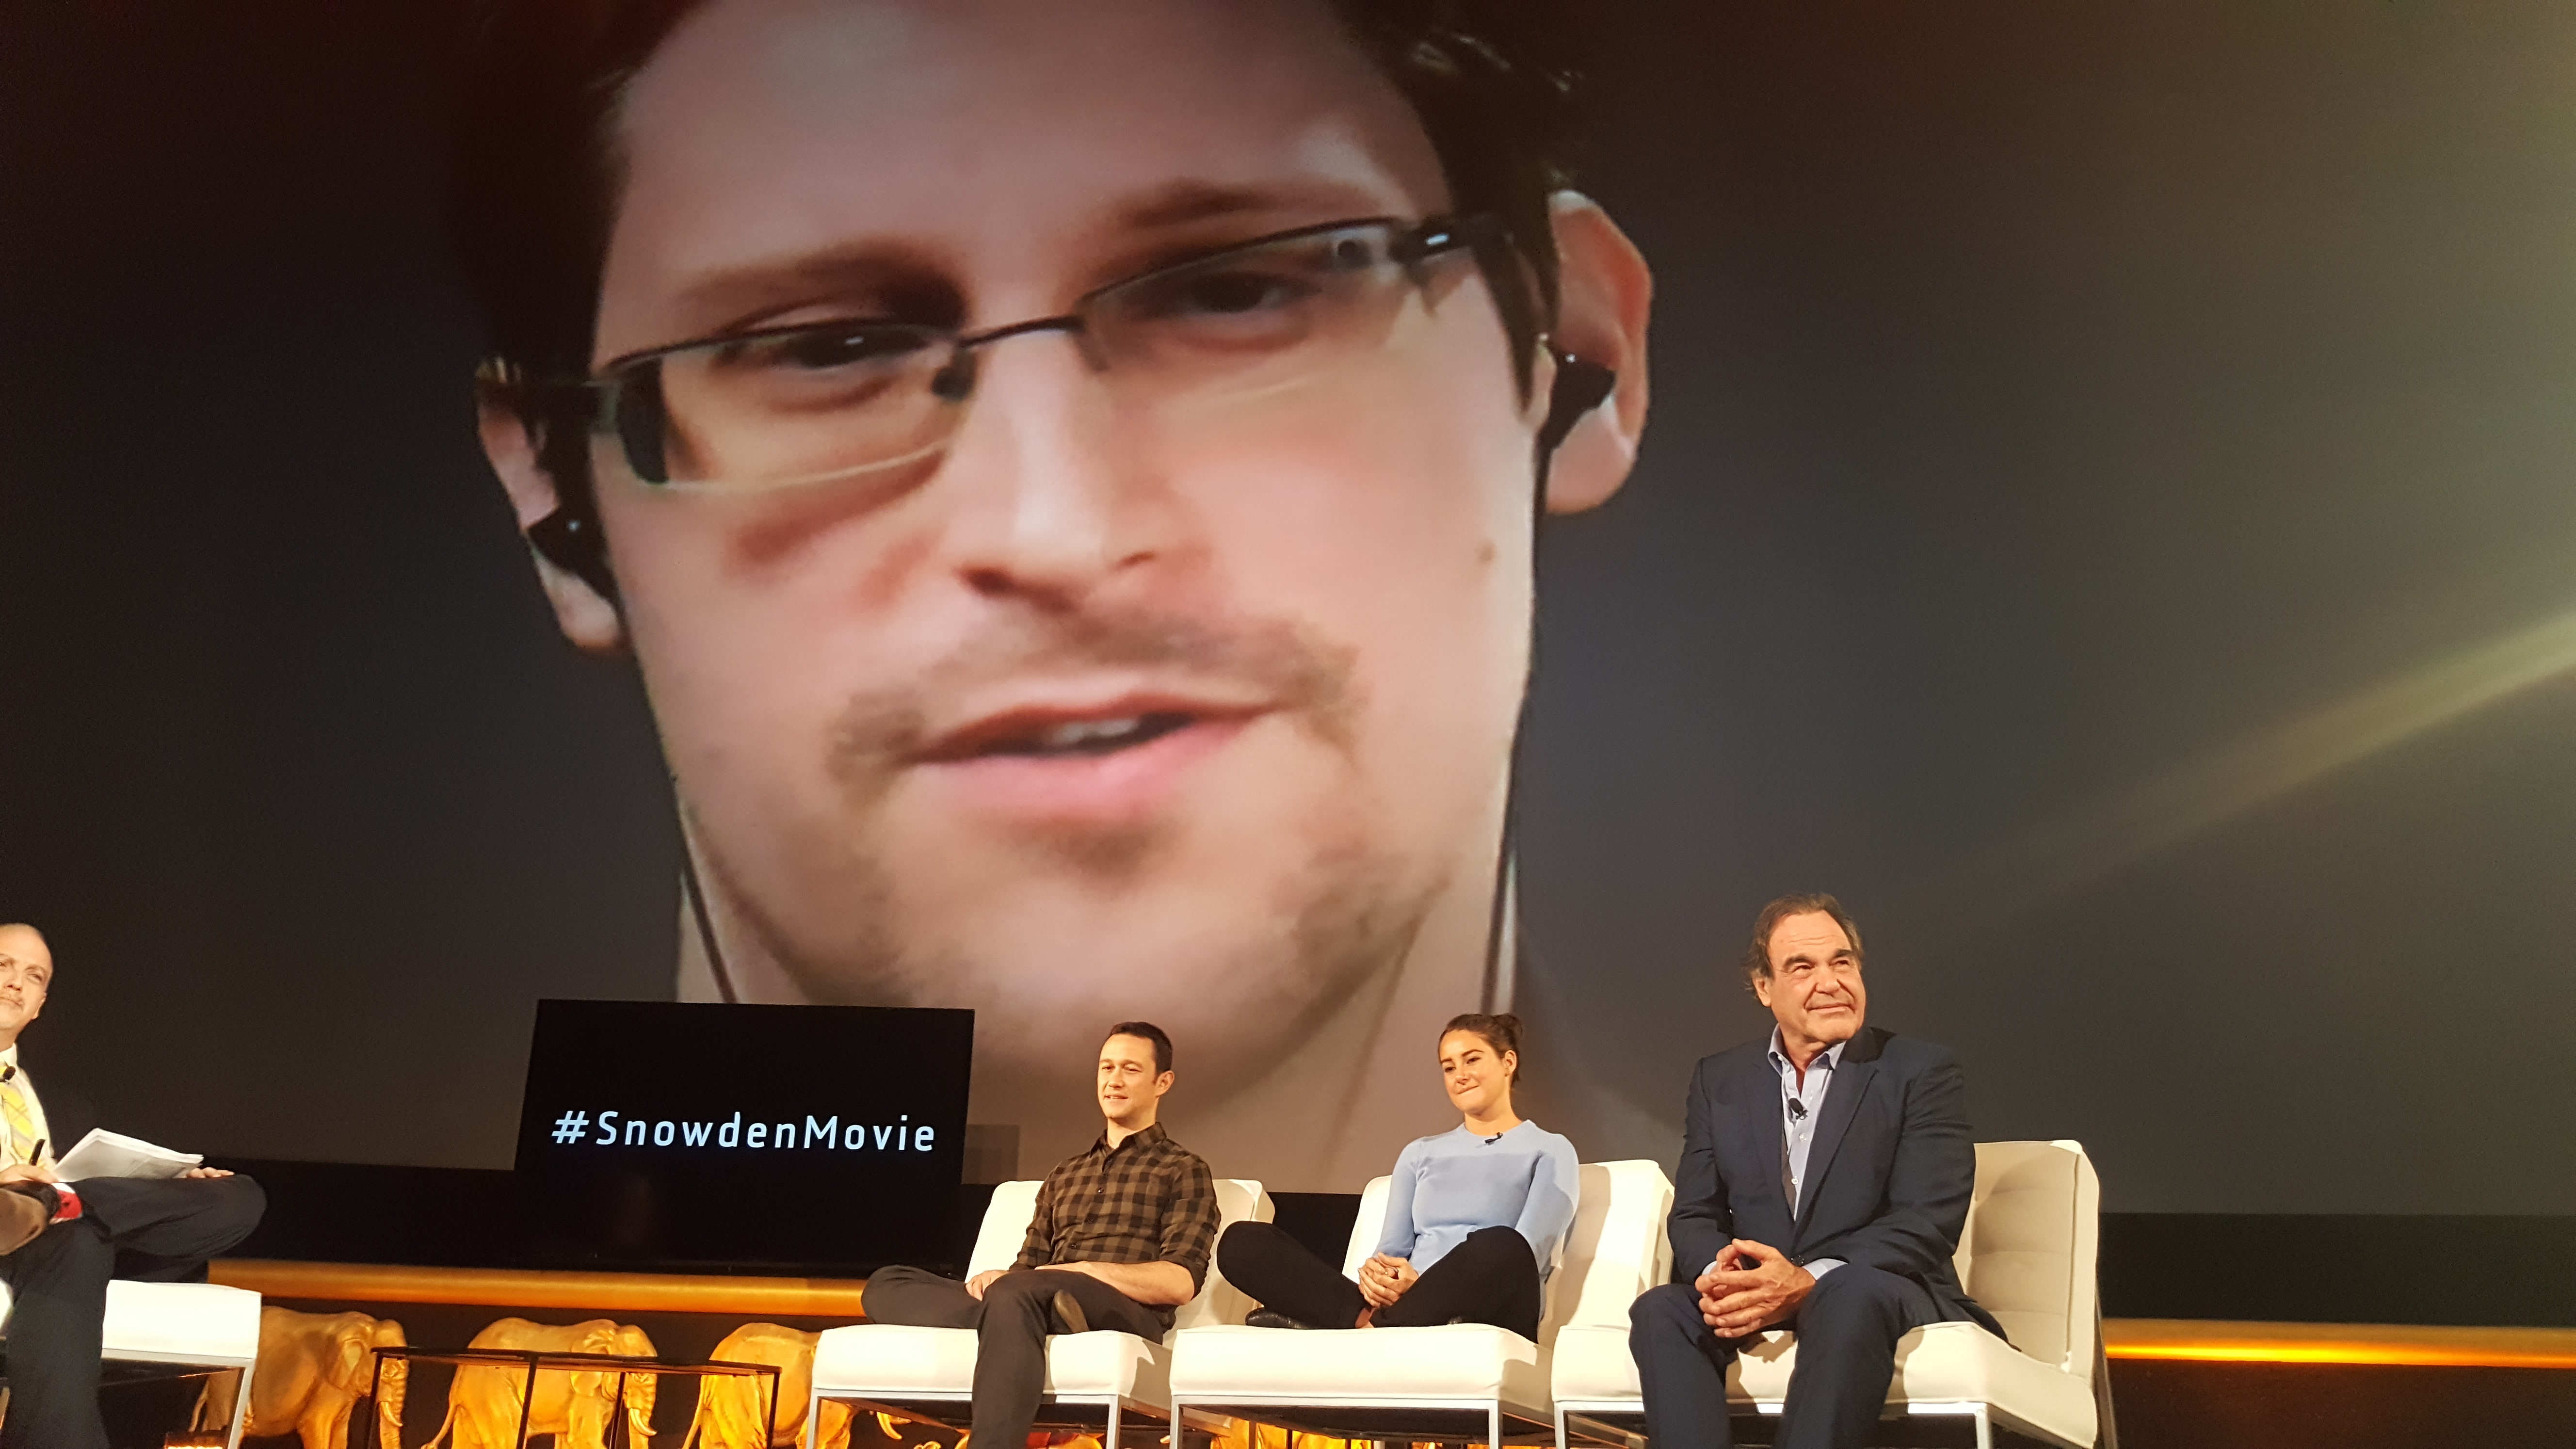 edward snowden essay The government is essentially giving itself broad powers to spy on us, and justifying it with the vague excuse of combating terrorism snowden advises investigative.